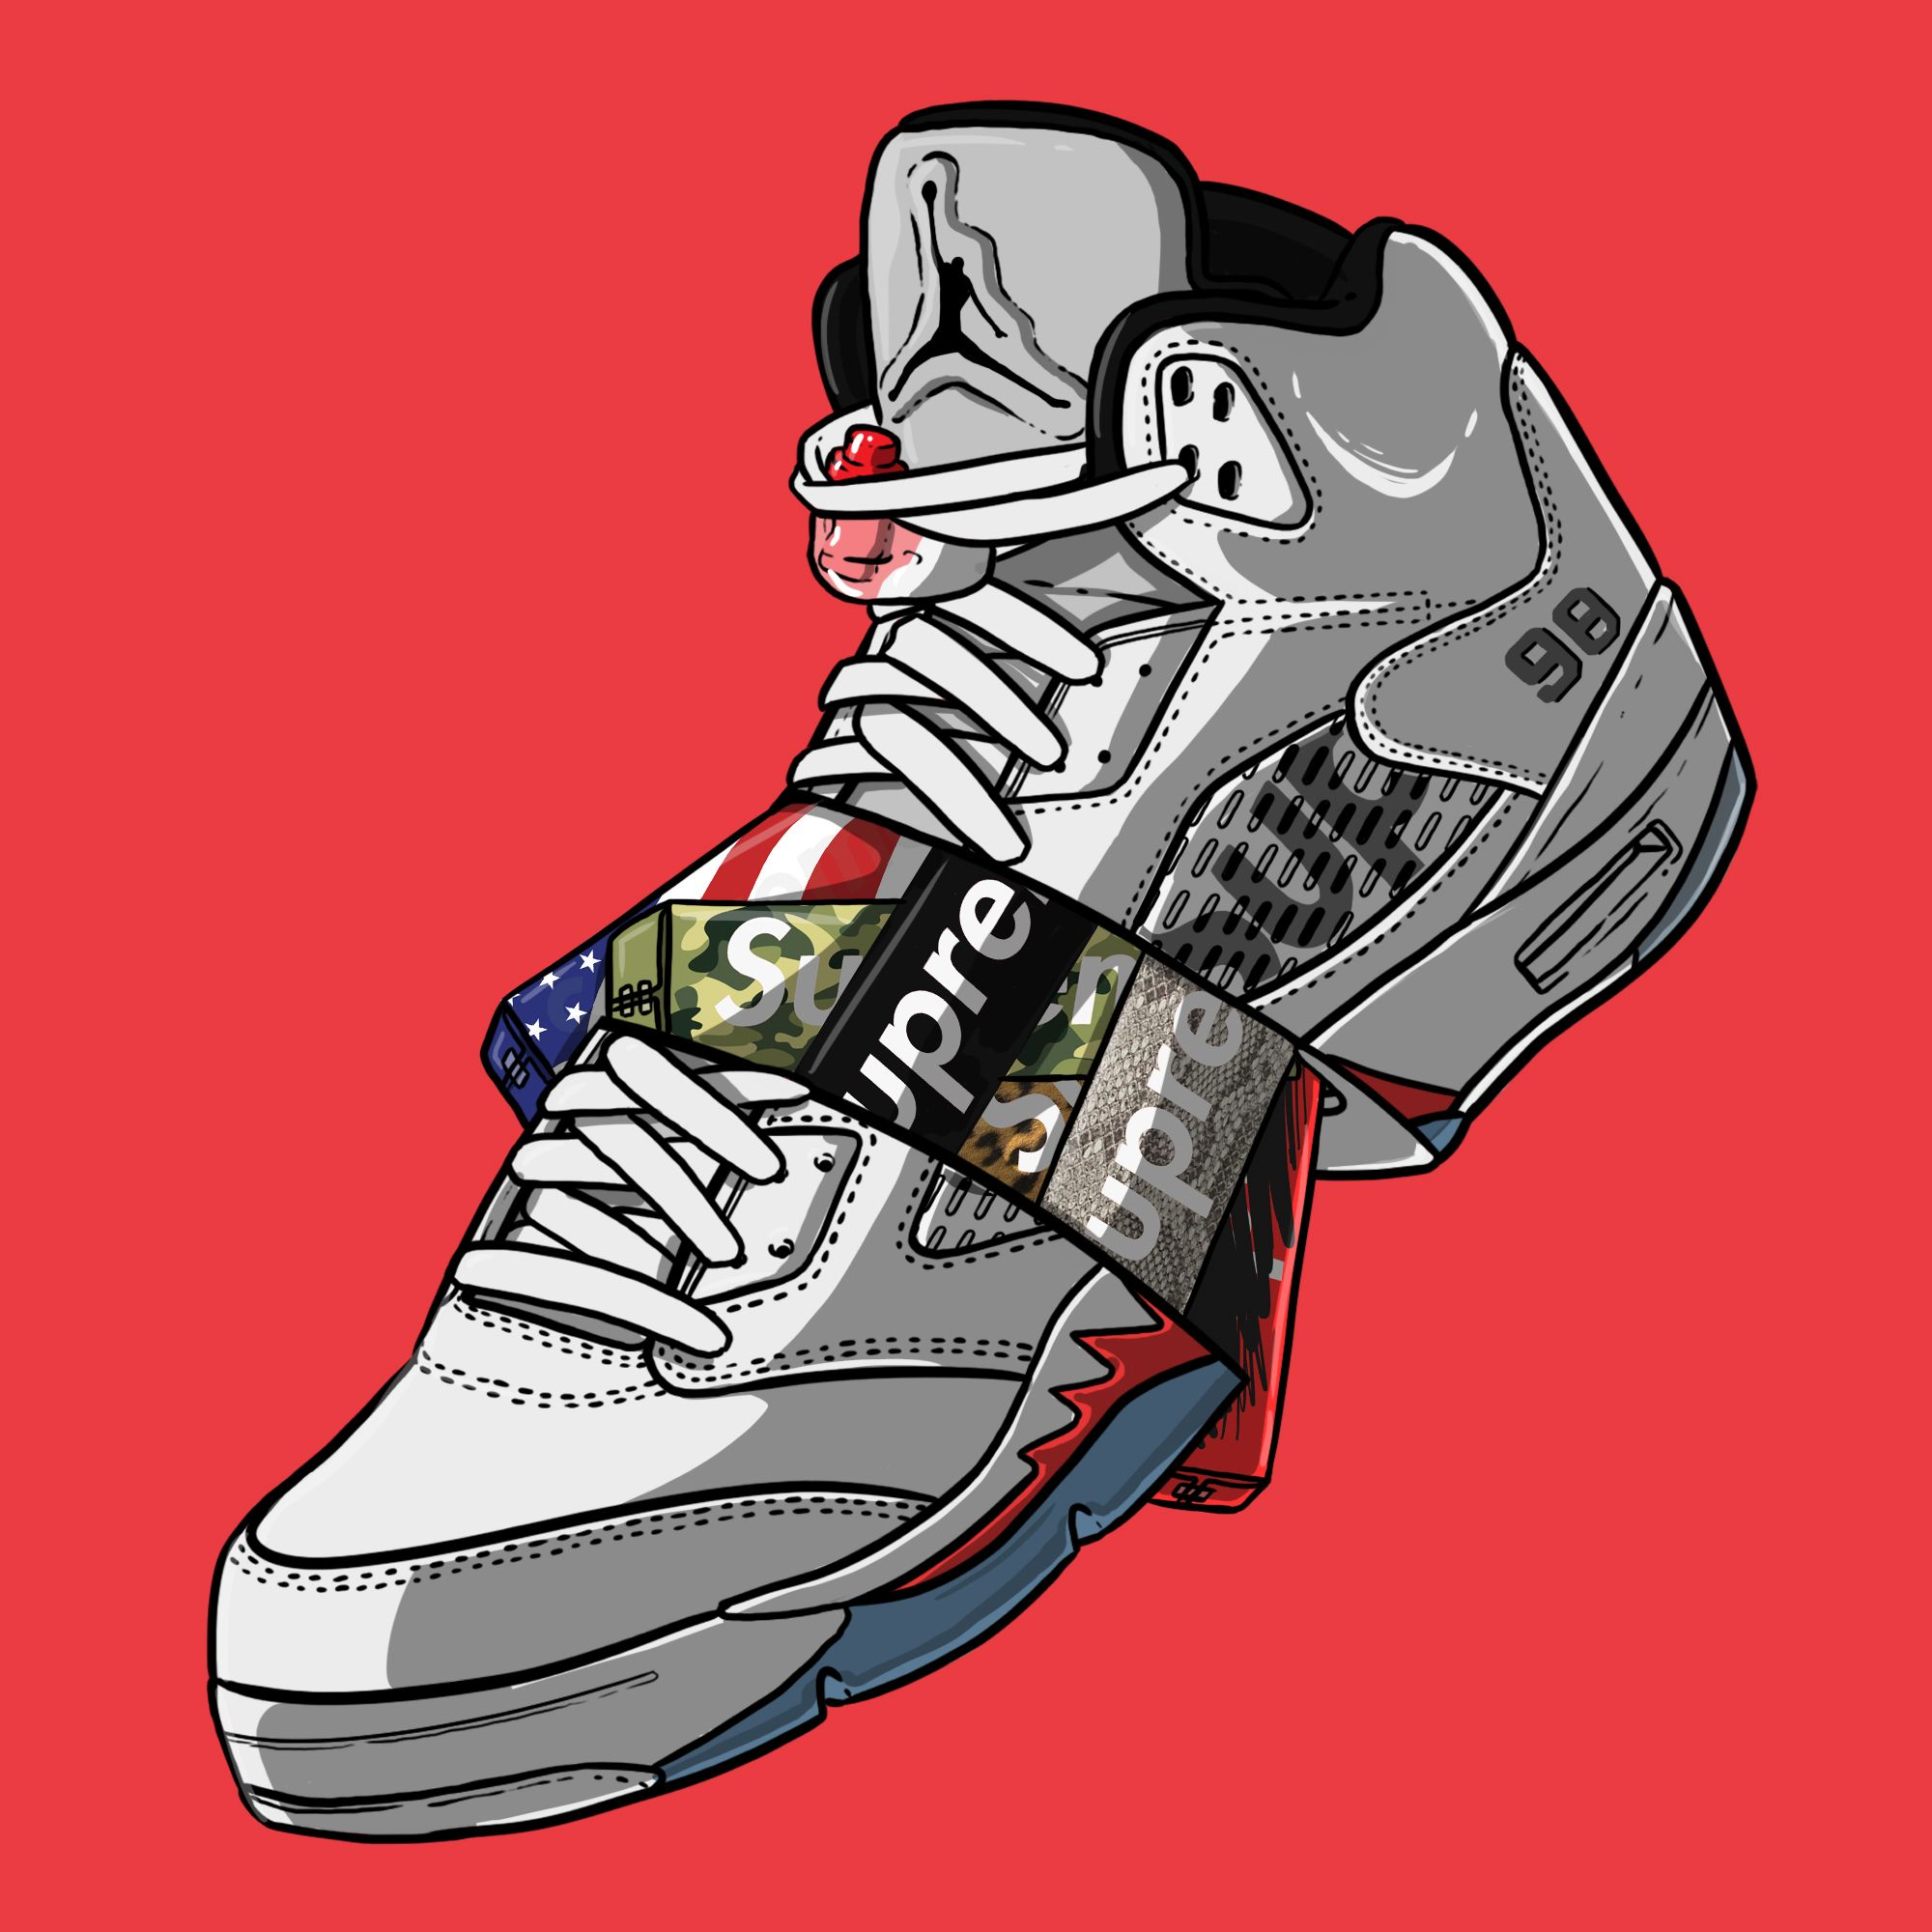 nike shoes x bape animated artwork photographs 941820